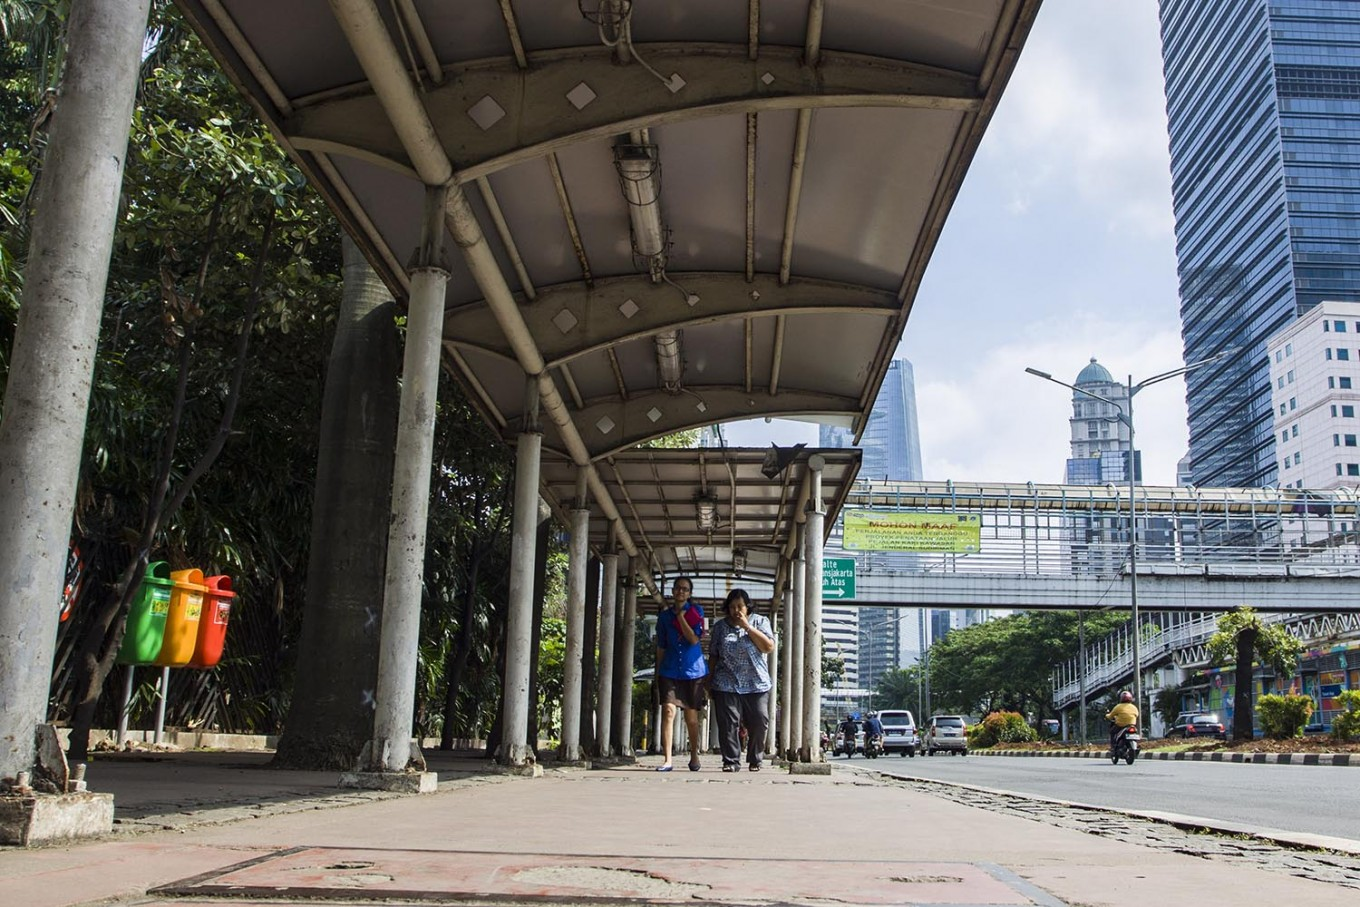 After Asian Games, can we continue reclaiming Jakarta for pedestrians?